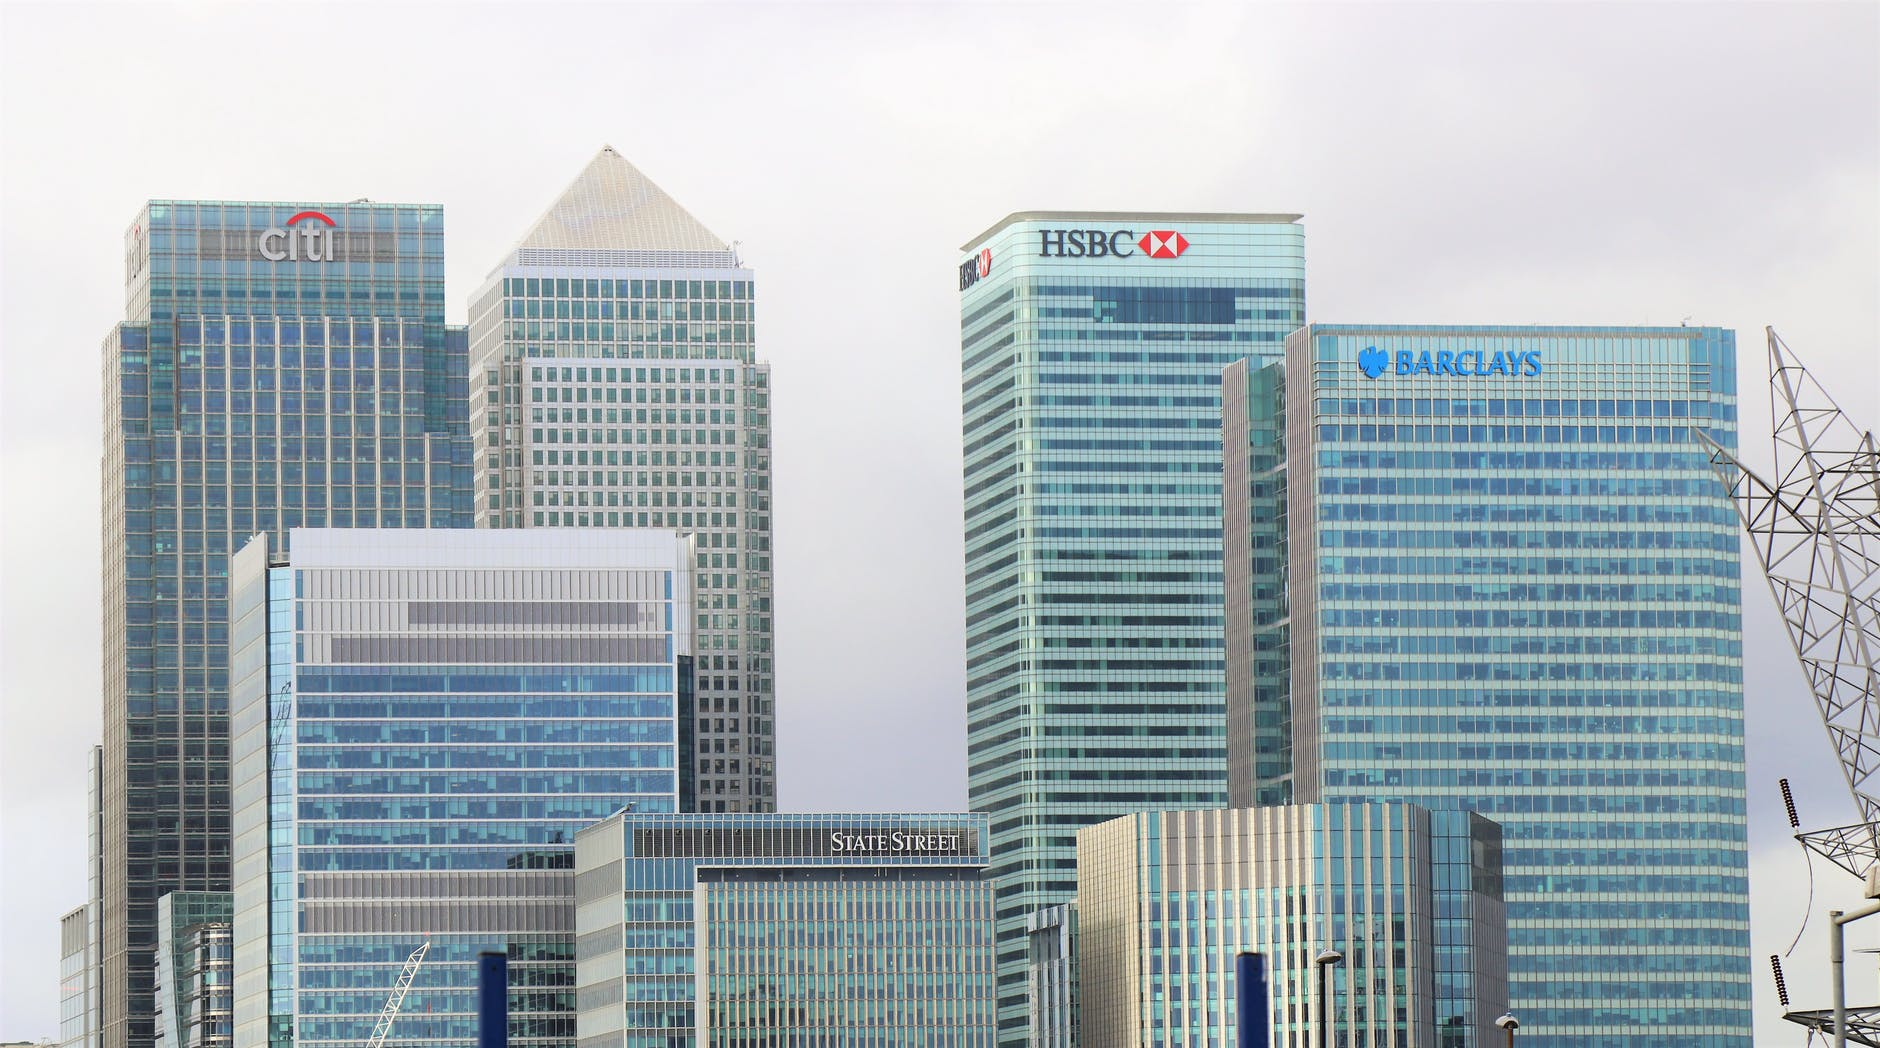 a mixture of bank buildings including HSBC in London